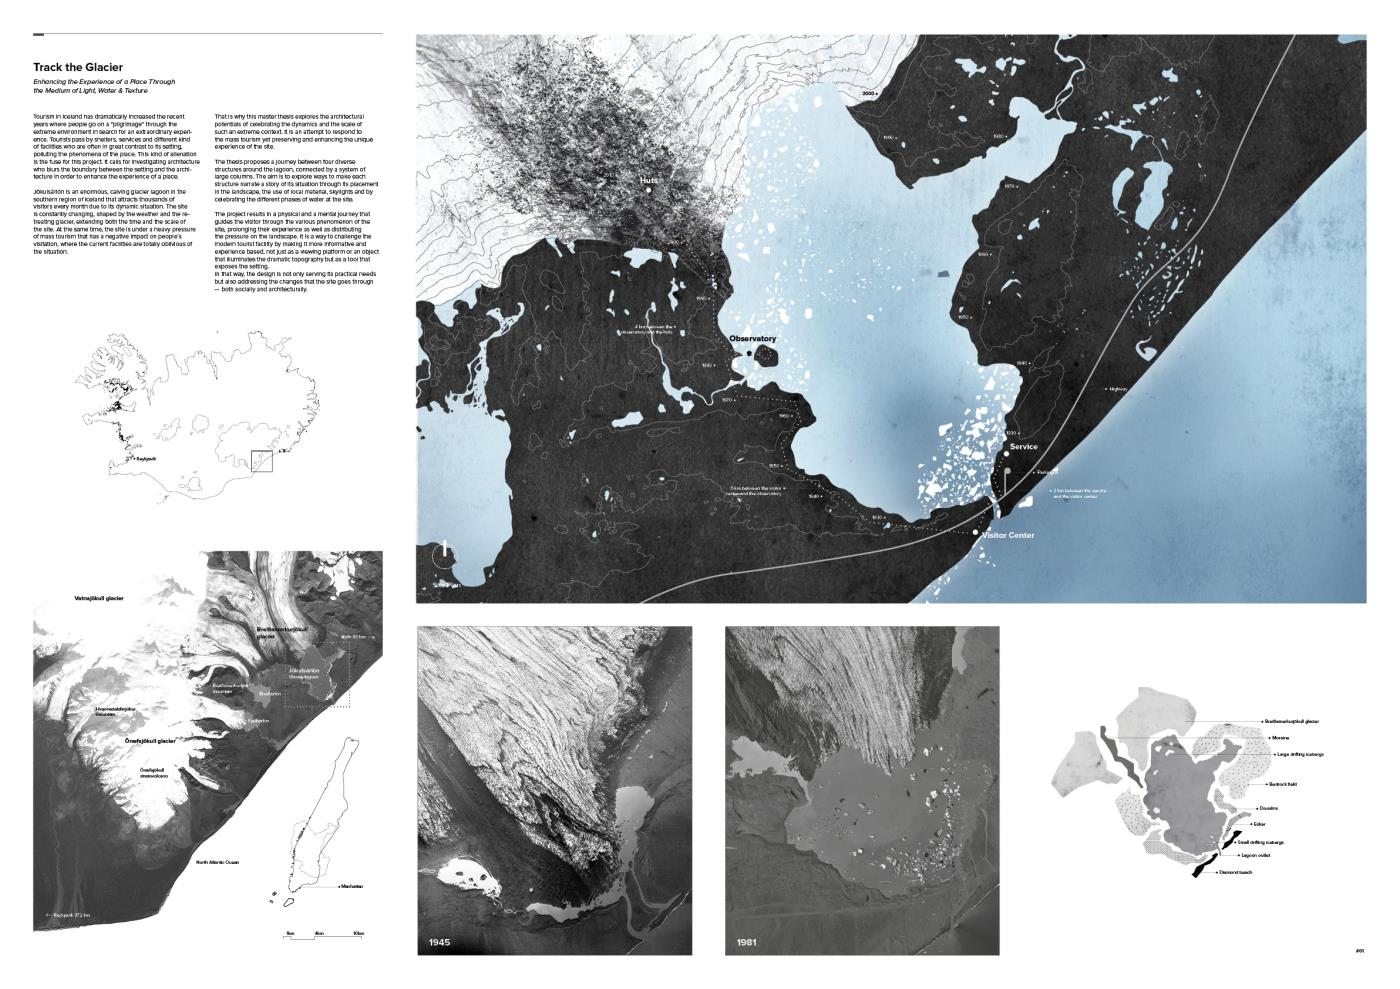 Track the Glacier – Enhancing the Experience of a Place Through the Medium of Light, Water and Texture